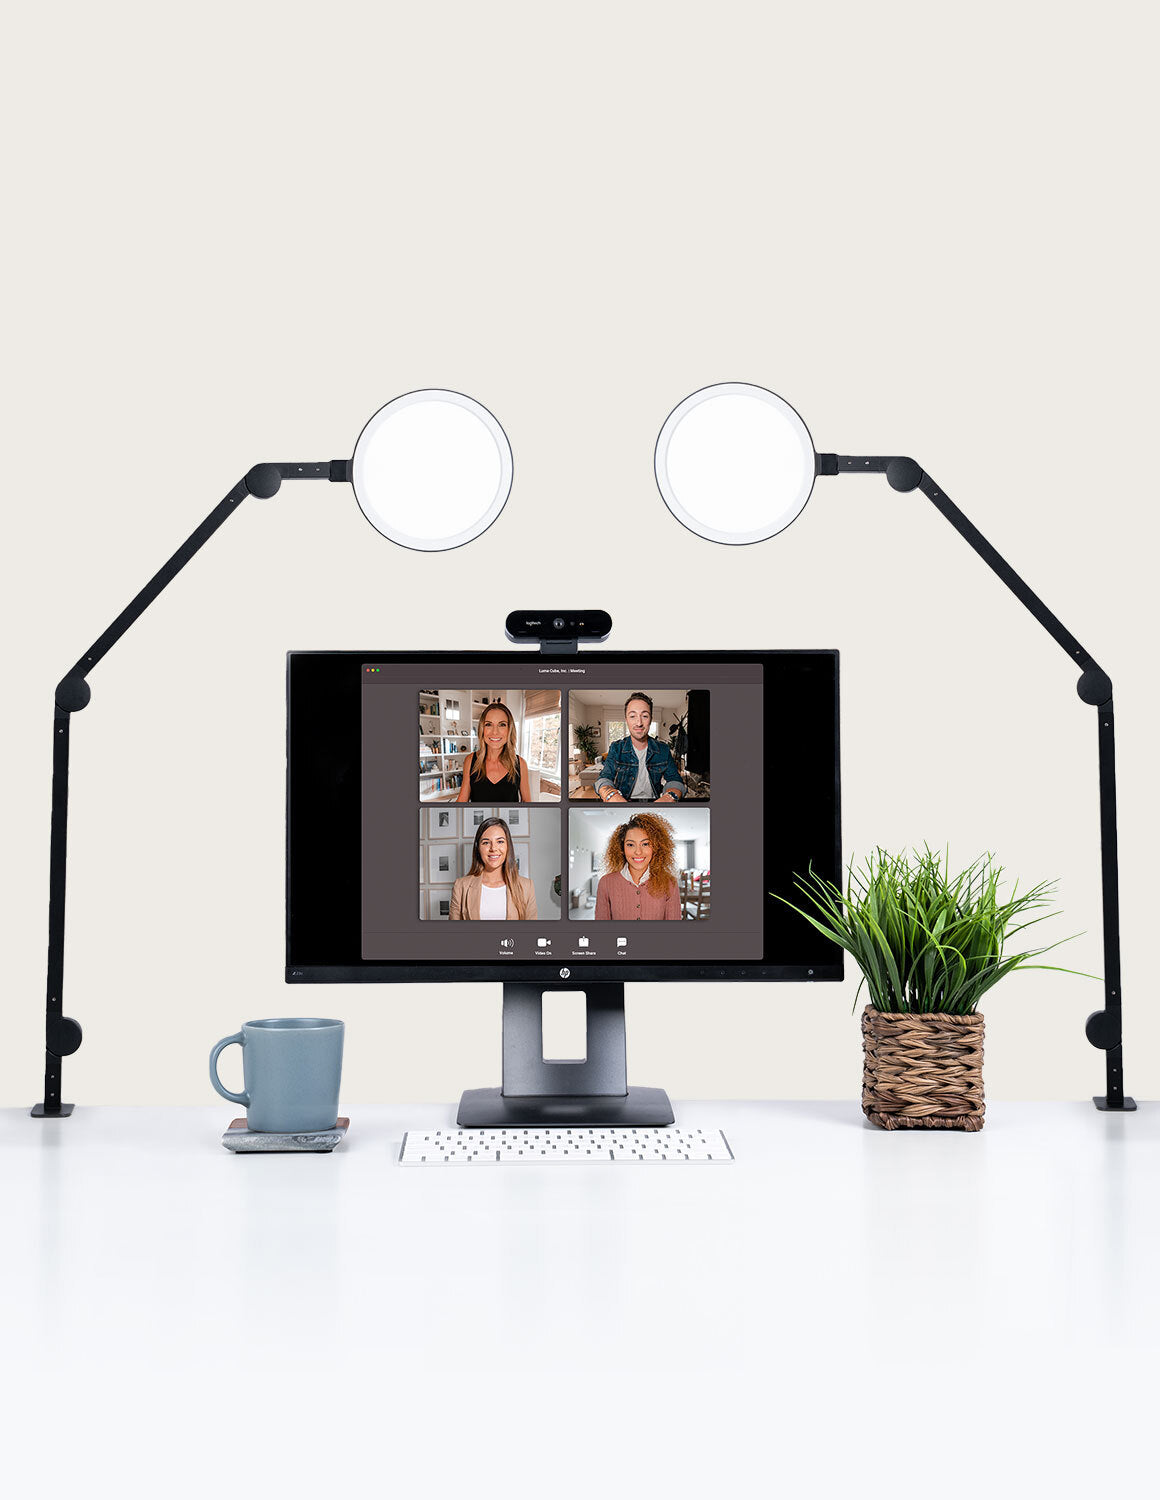 lume cube edge light 2 pack desk set up for video conferencing and streaming